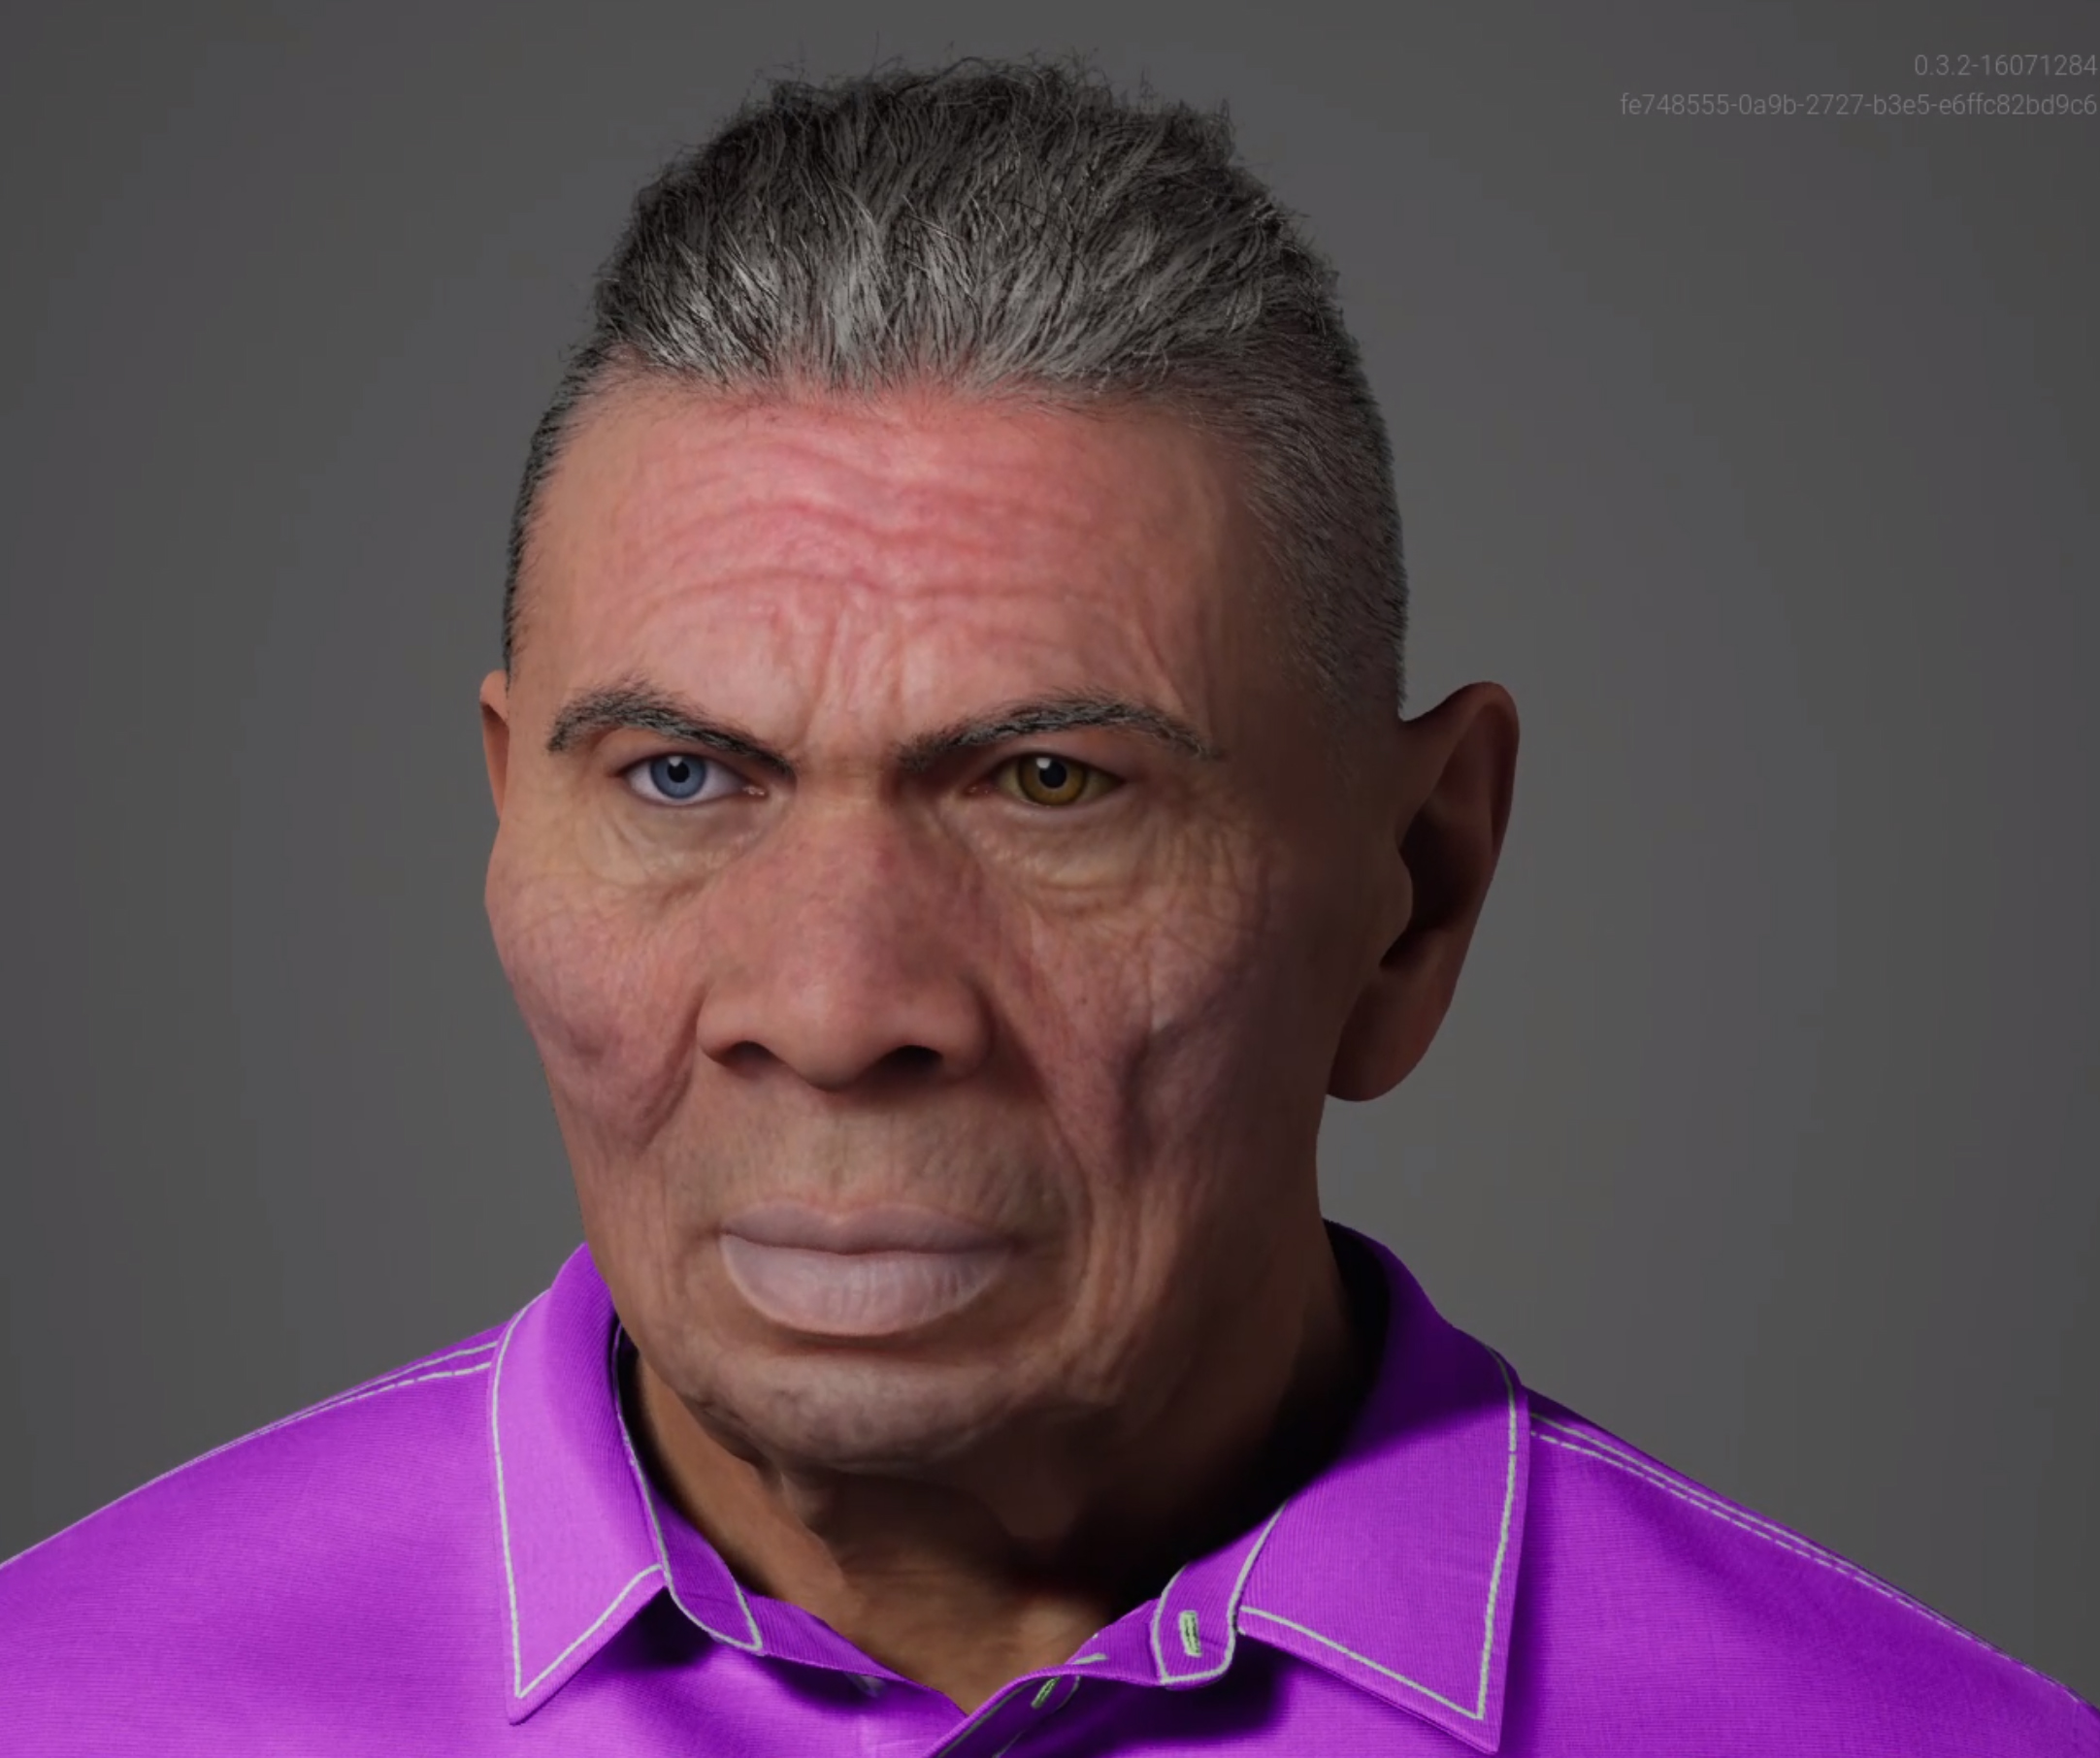 This is Herb a MetaHuman created with the Unreal Engine Metahuman Creator